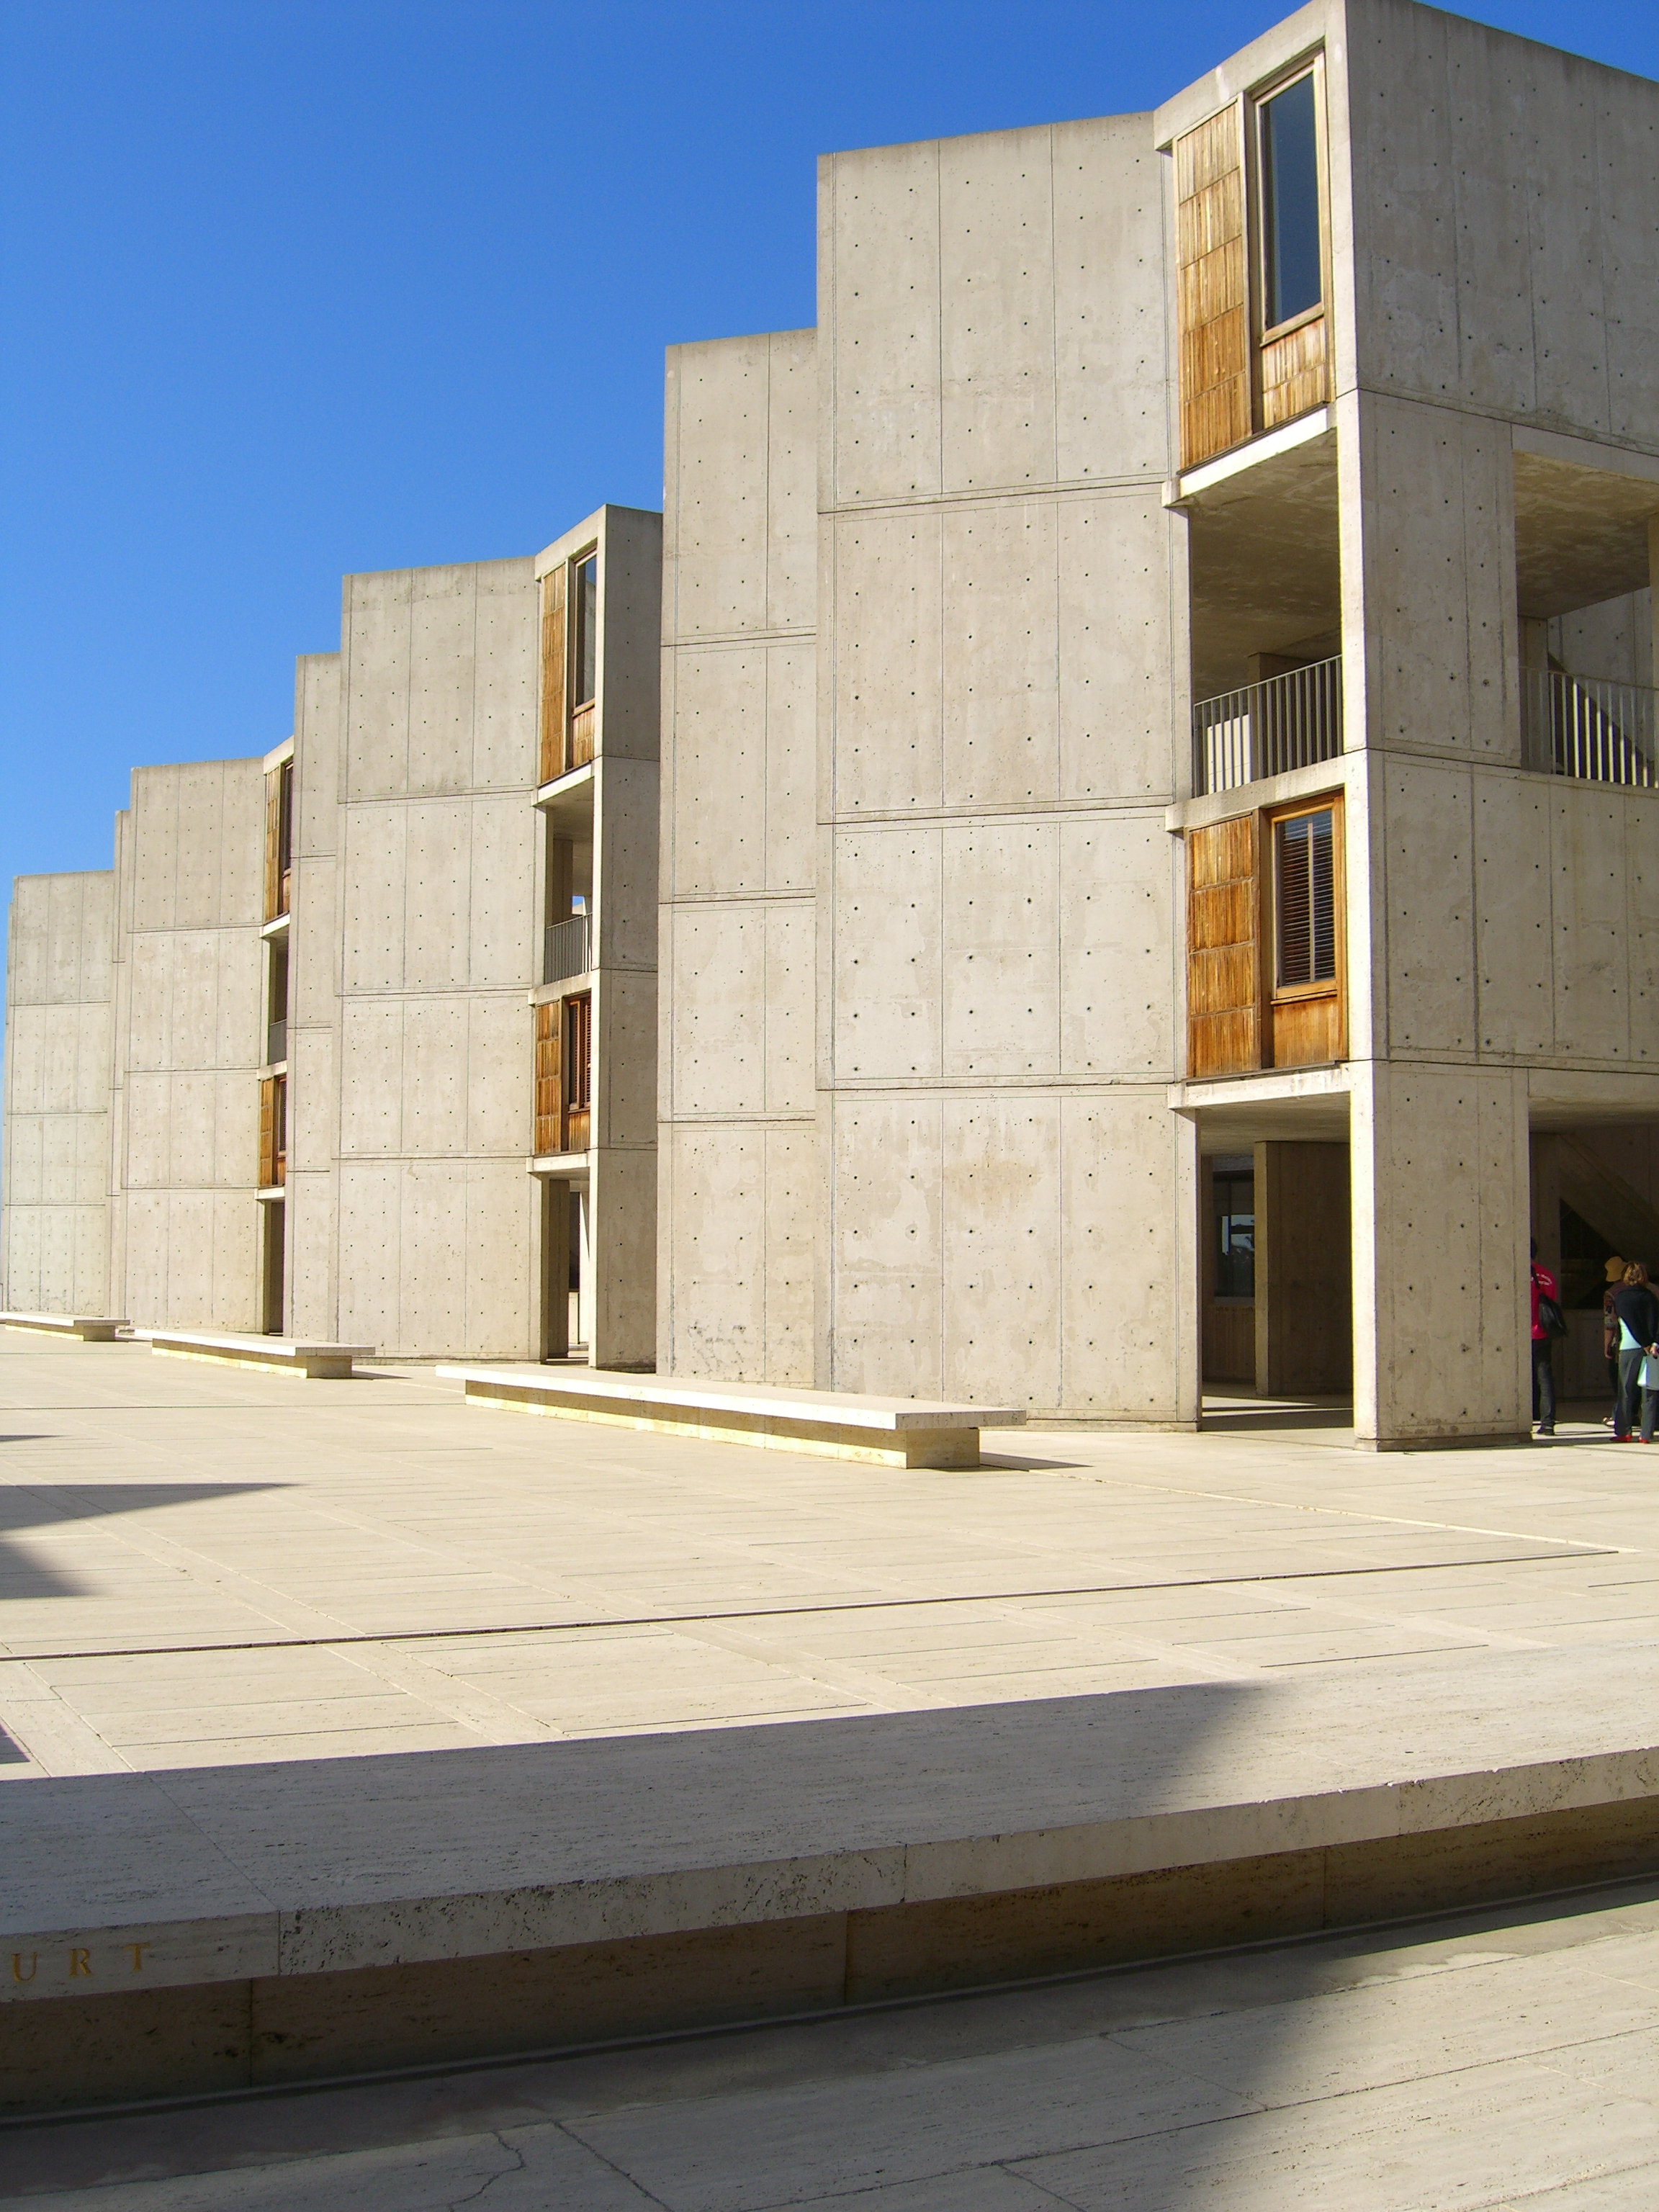 File:Salk Institute (14).jpg - Wikimedia Commons